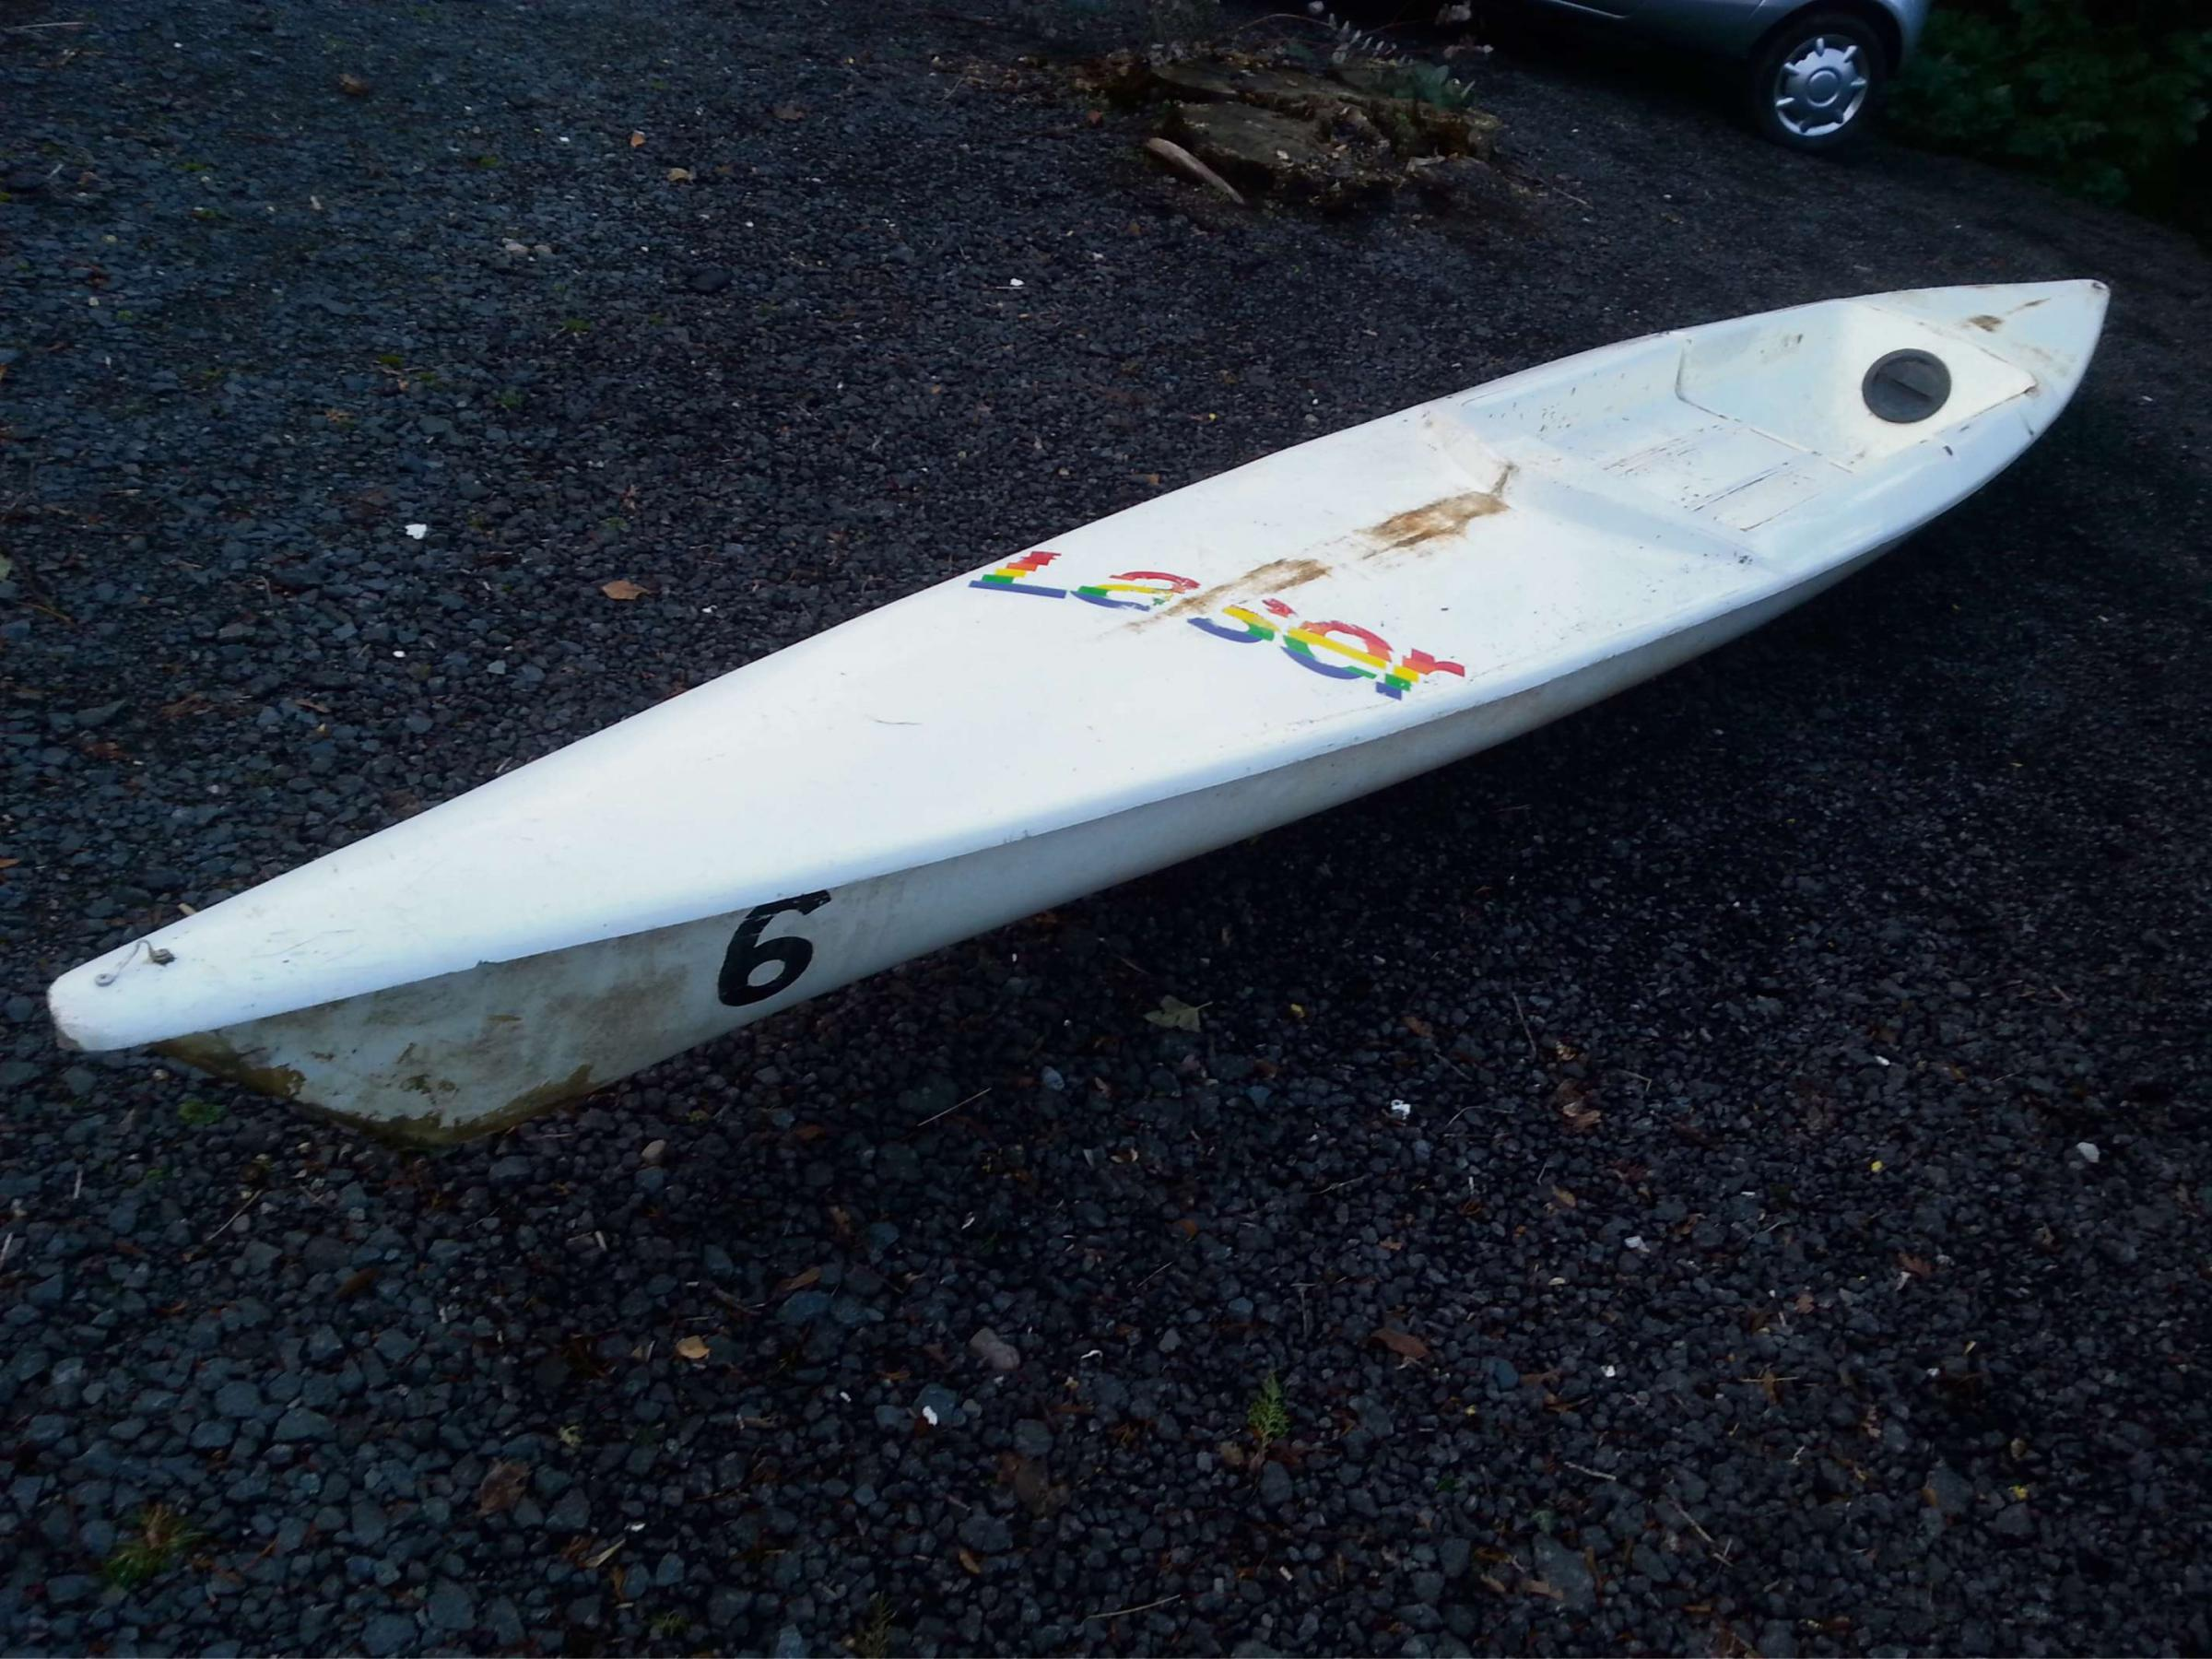 This canoe washed up near Sabrina Bridge, Worcester. (s)